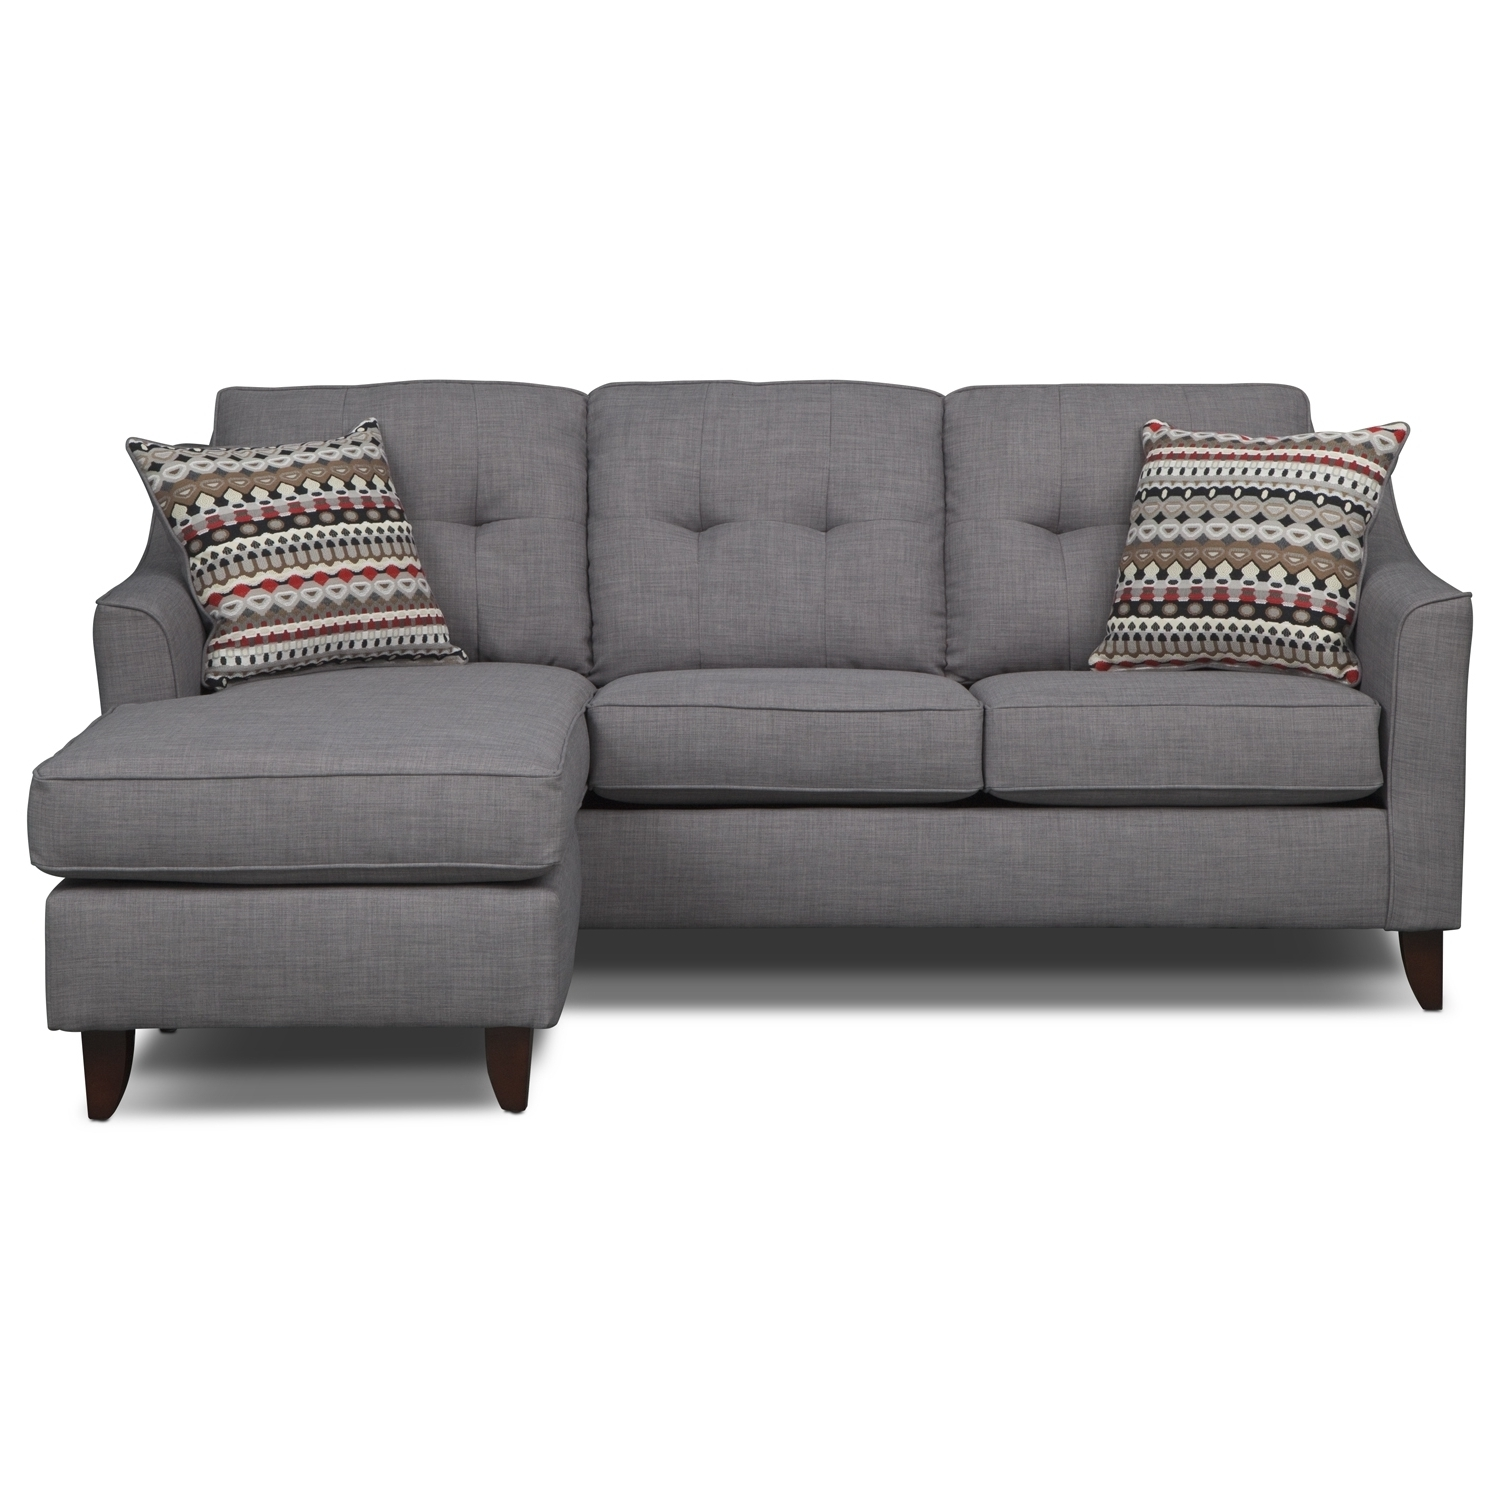 Value City Furniture Sofa My Apartment Story Pertaining To Recent Value City Sofas (View 17 of 20)